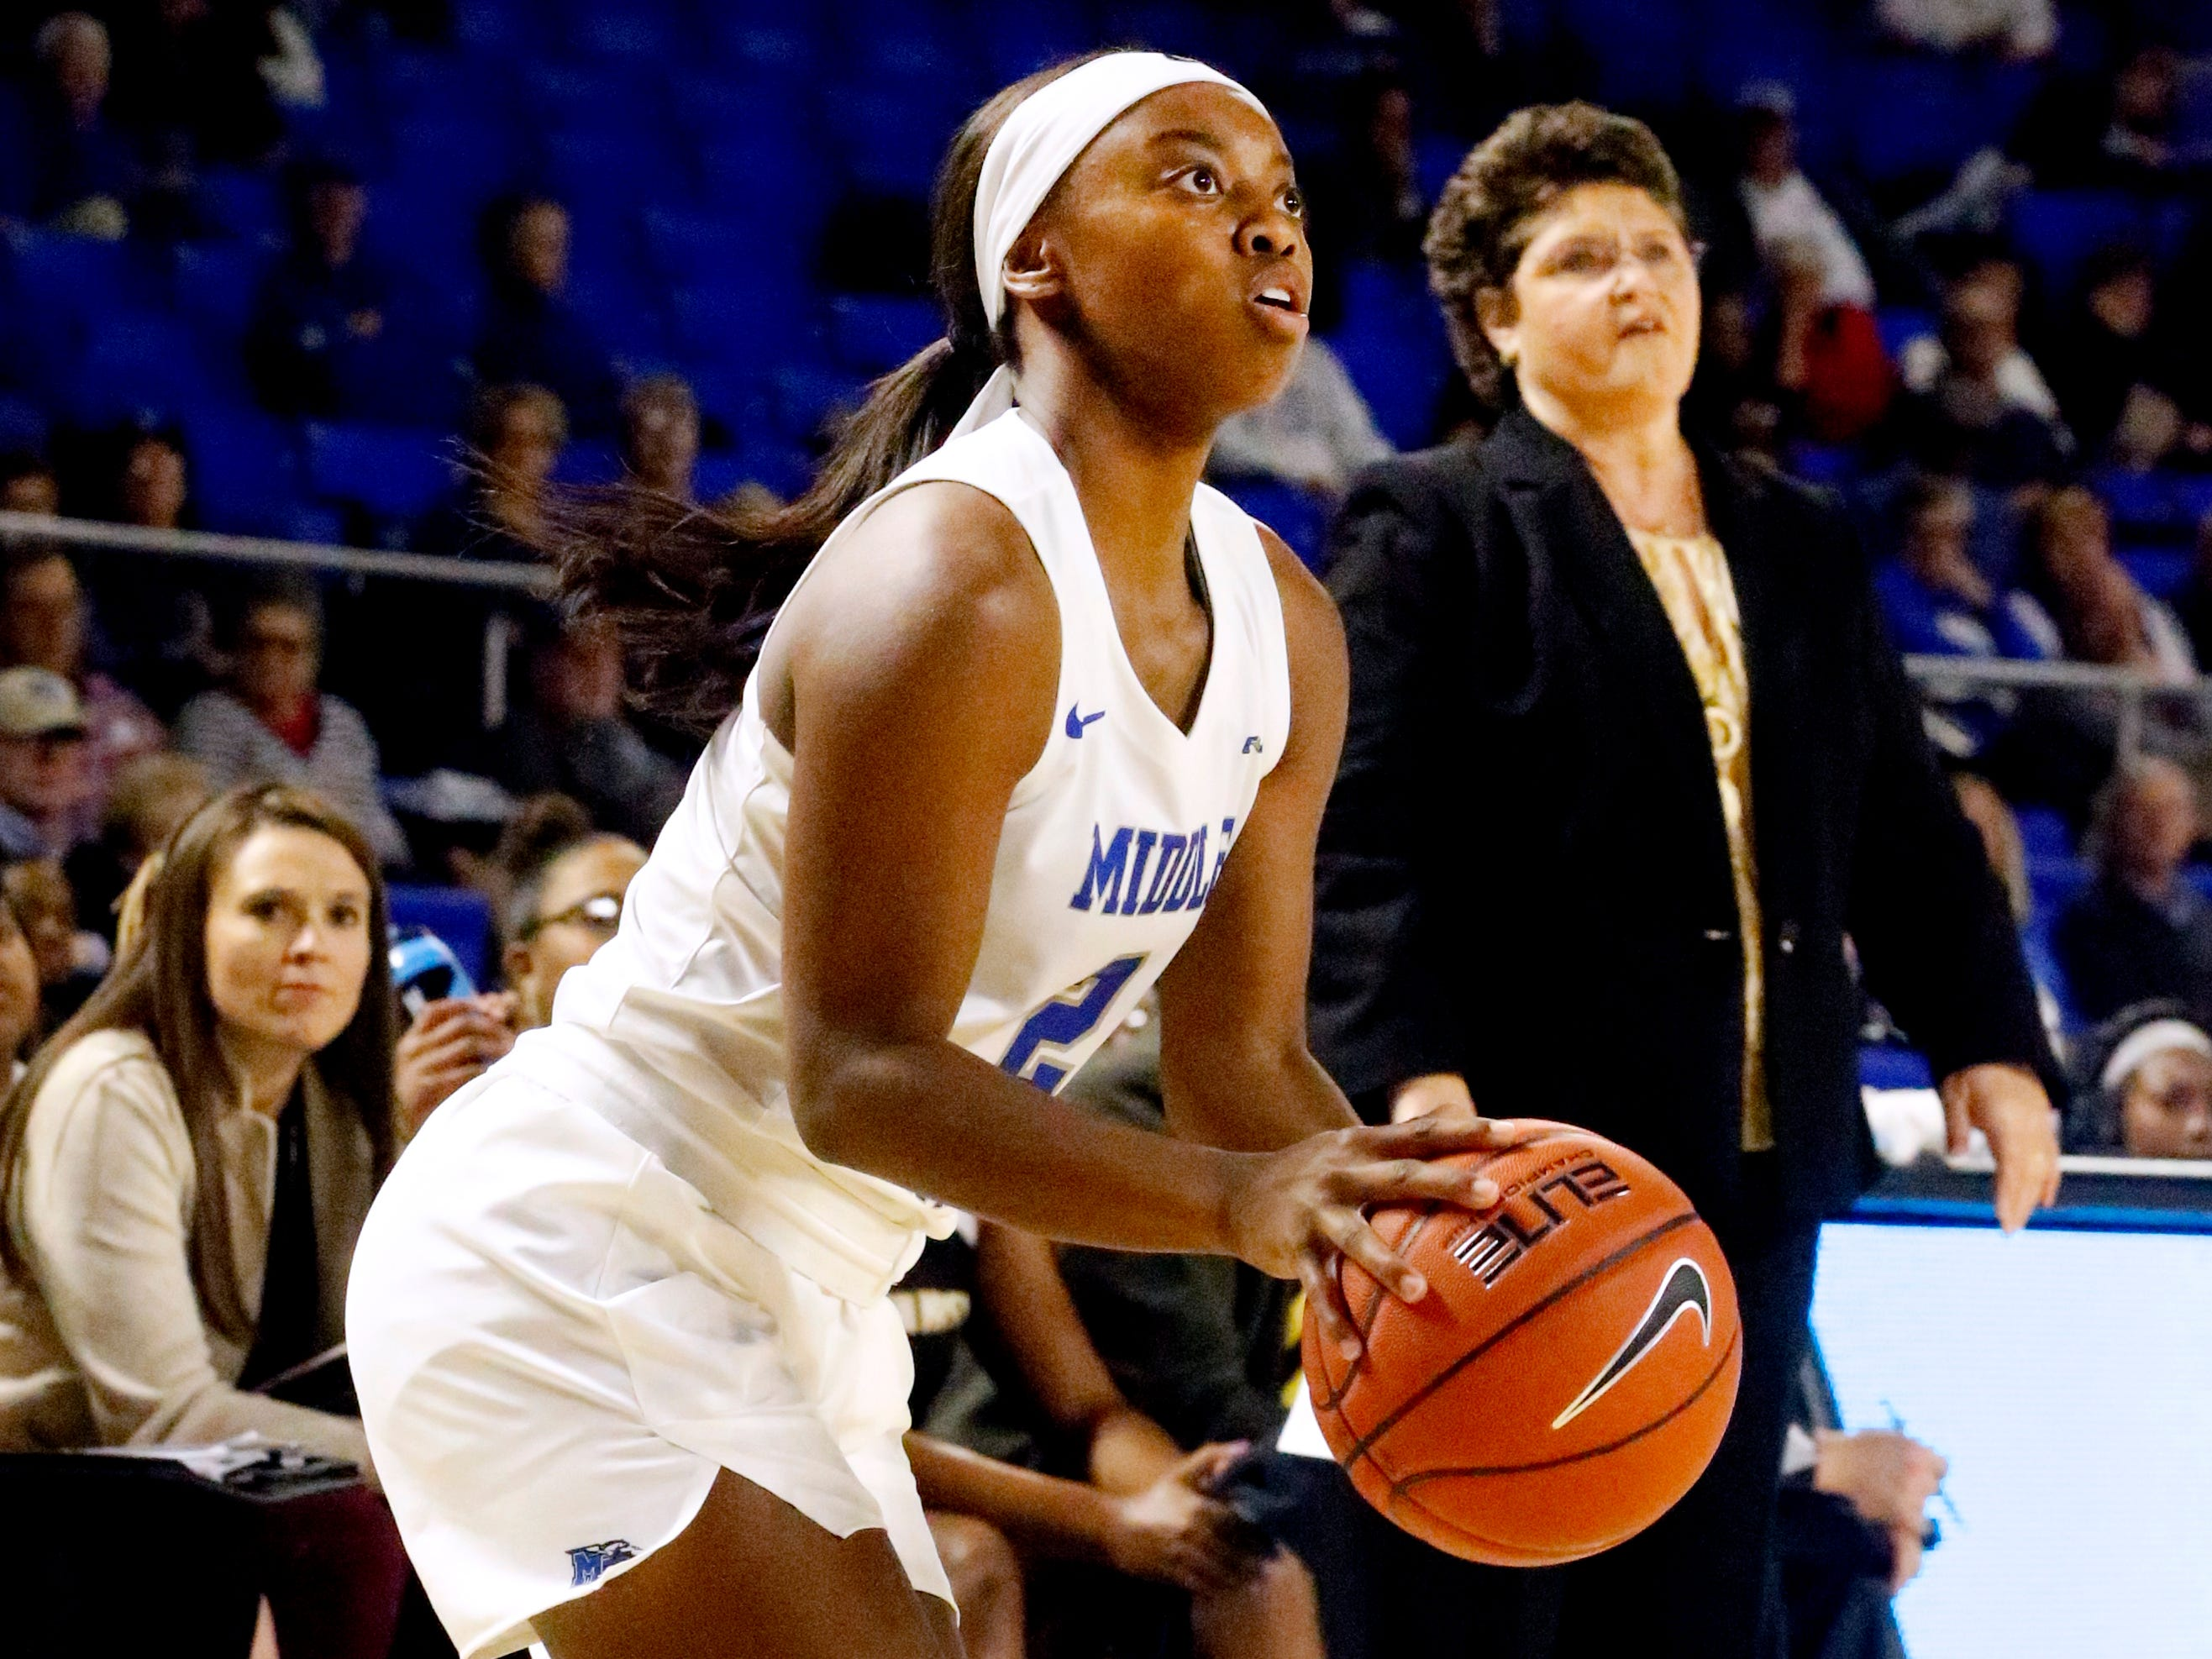 MTSU's guard Taylor Sutton (2) goes for a three point basket against Southern Miss, on Thursday Jan. 10, 2019.